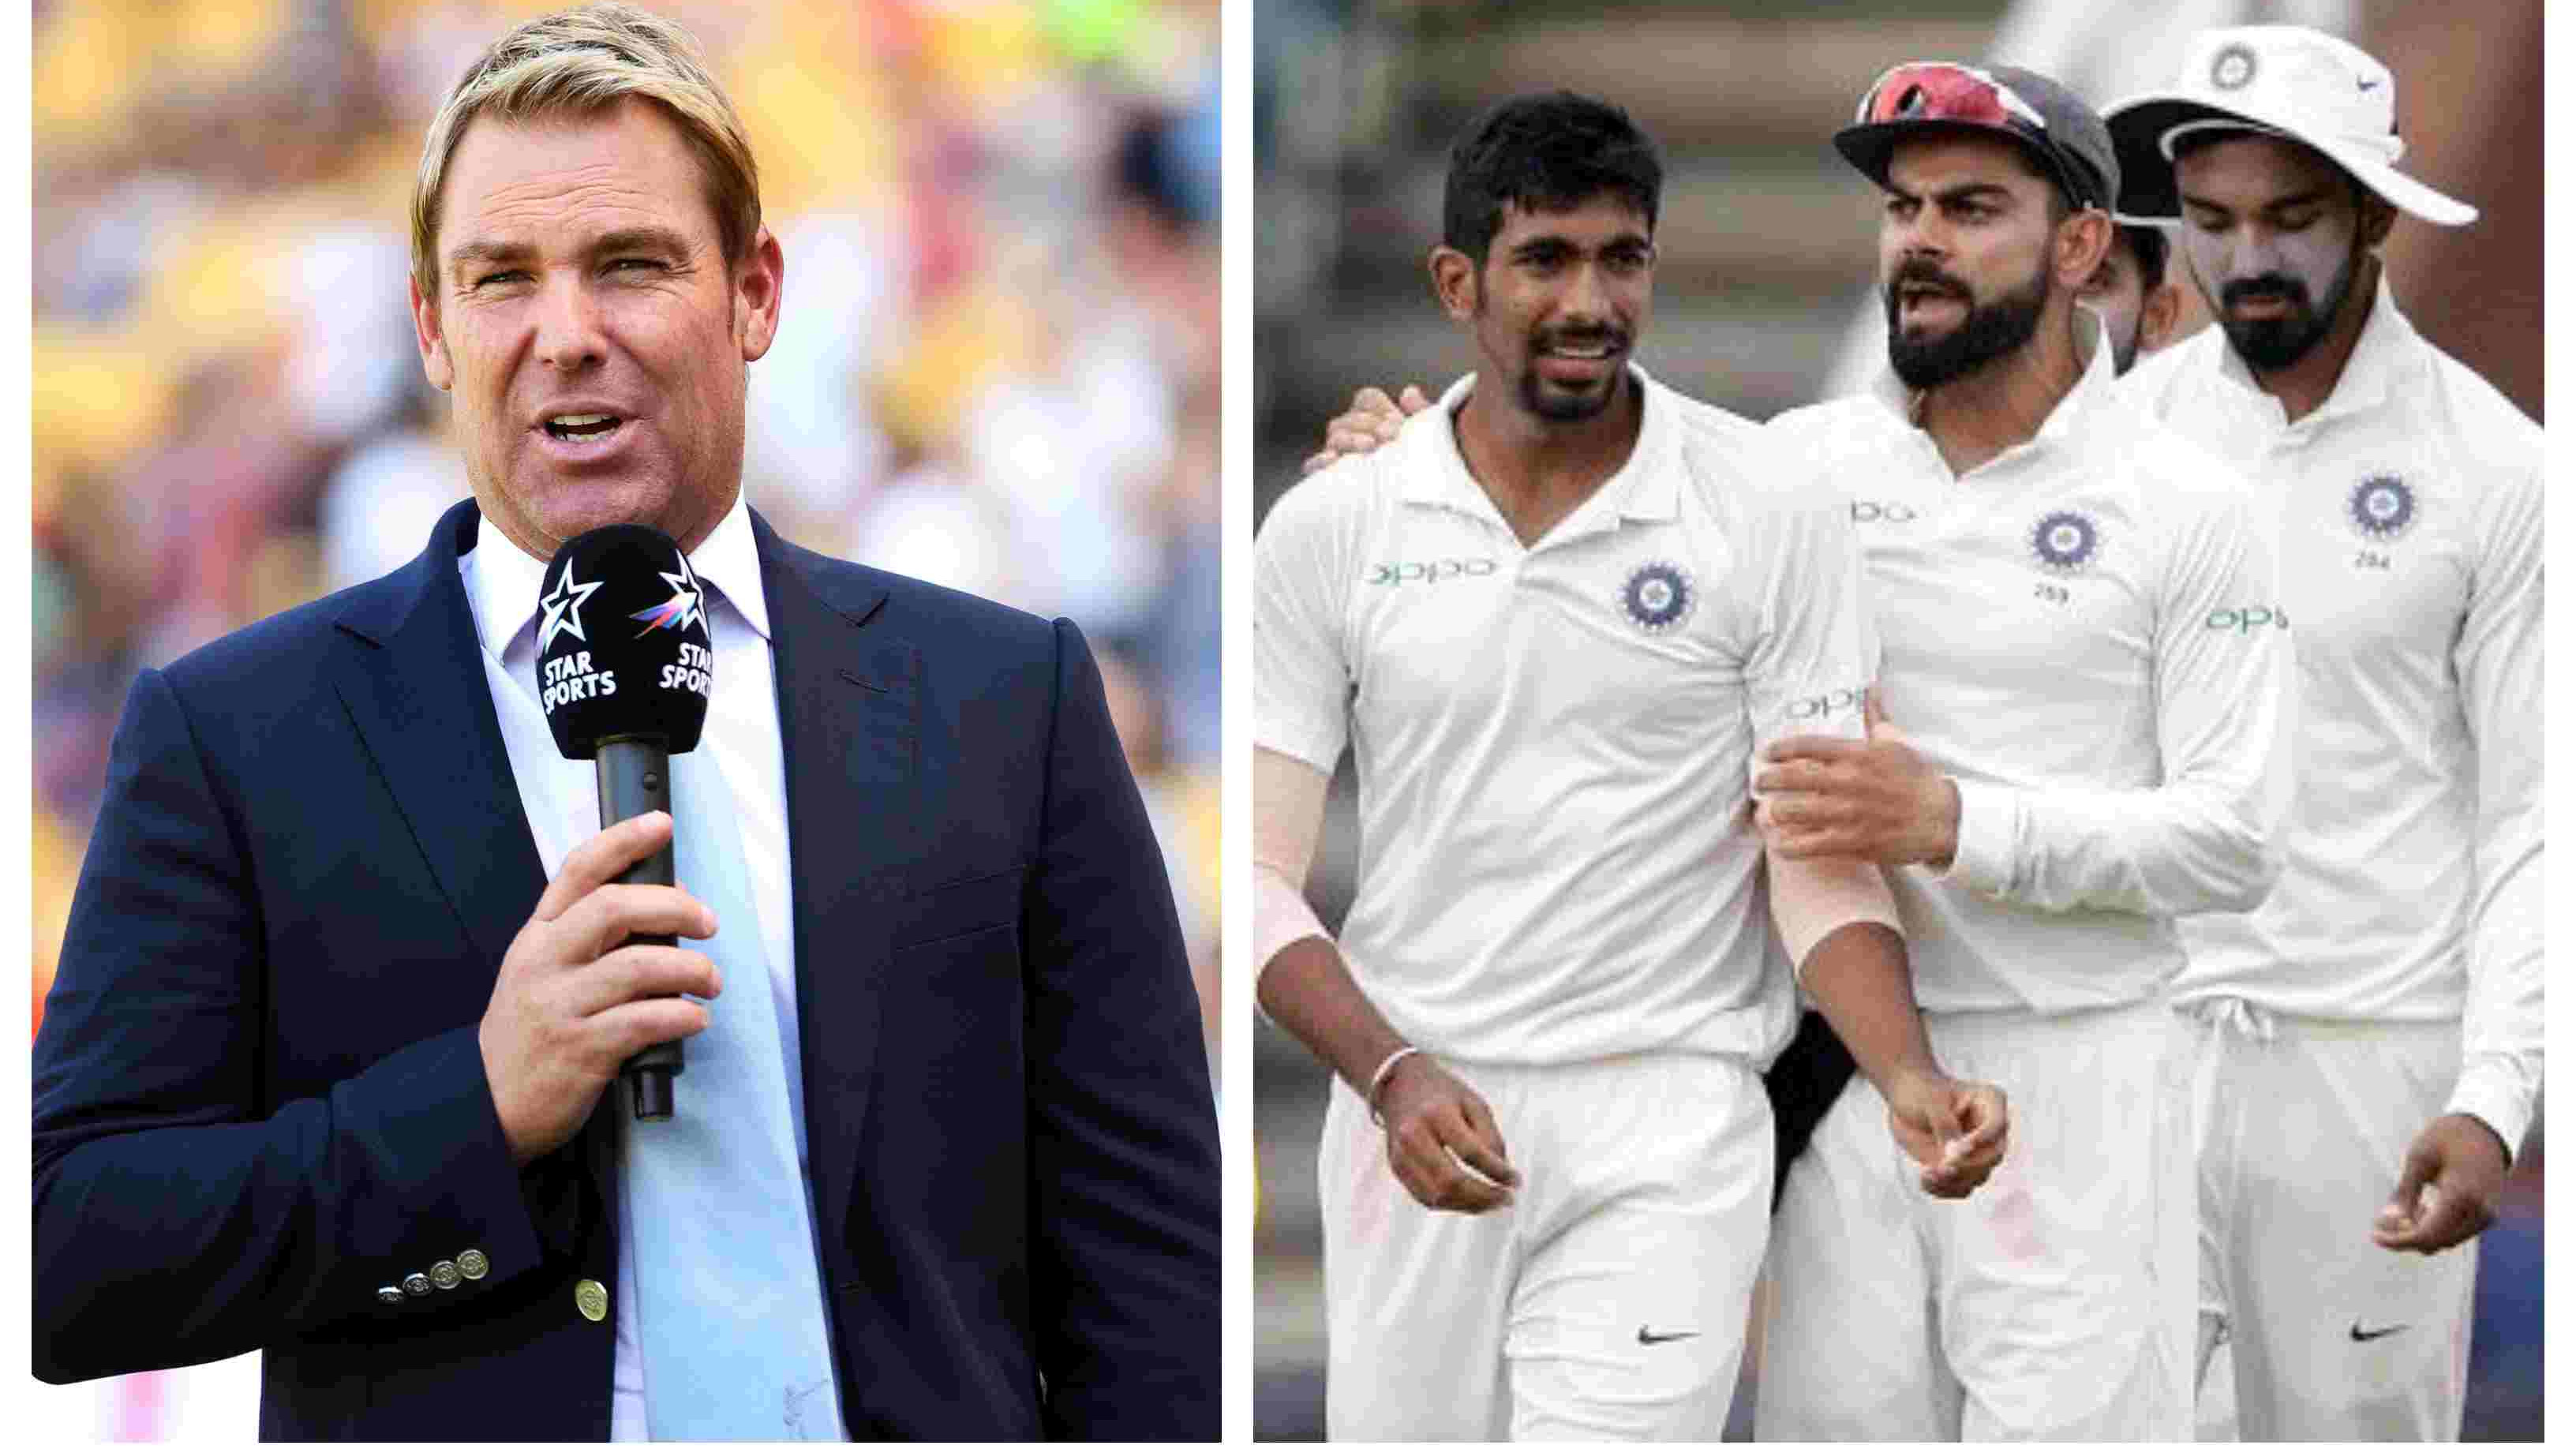 AUS v IND 2018-19: Shane Warne tips India as favourites for Border-Gavaskar Trophy